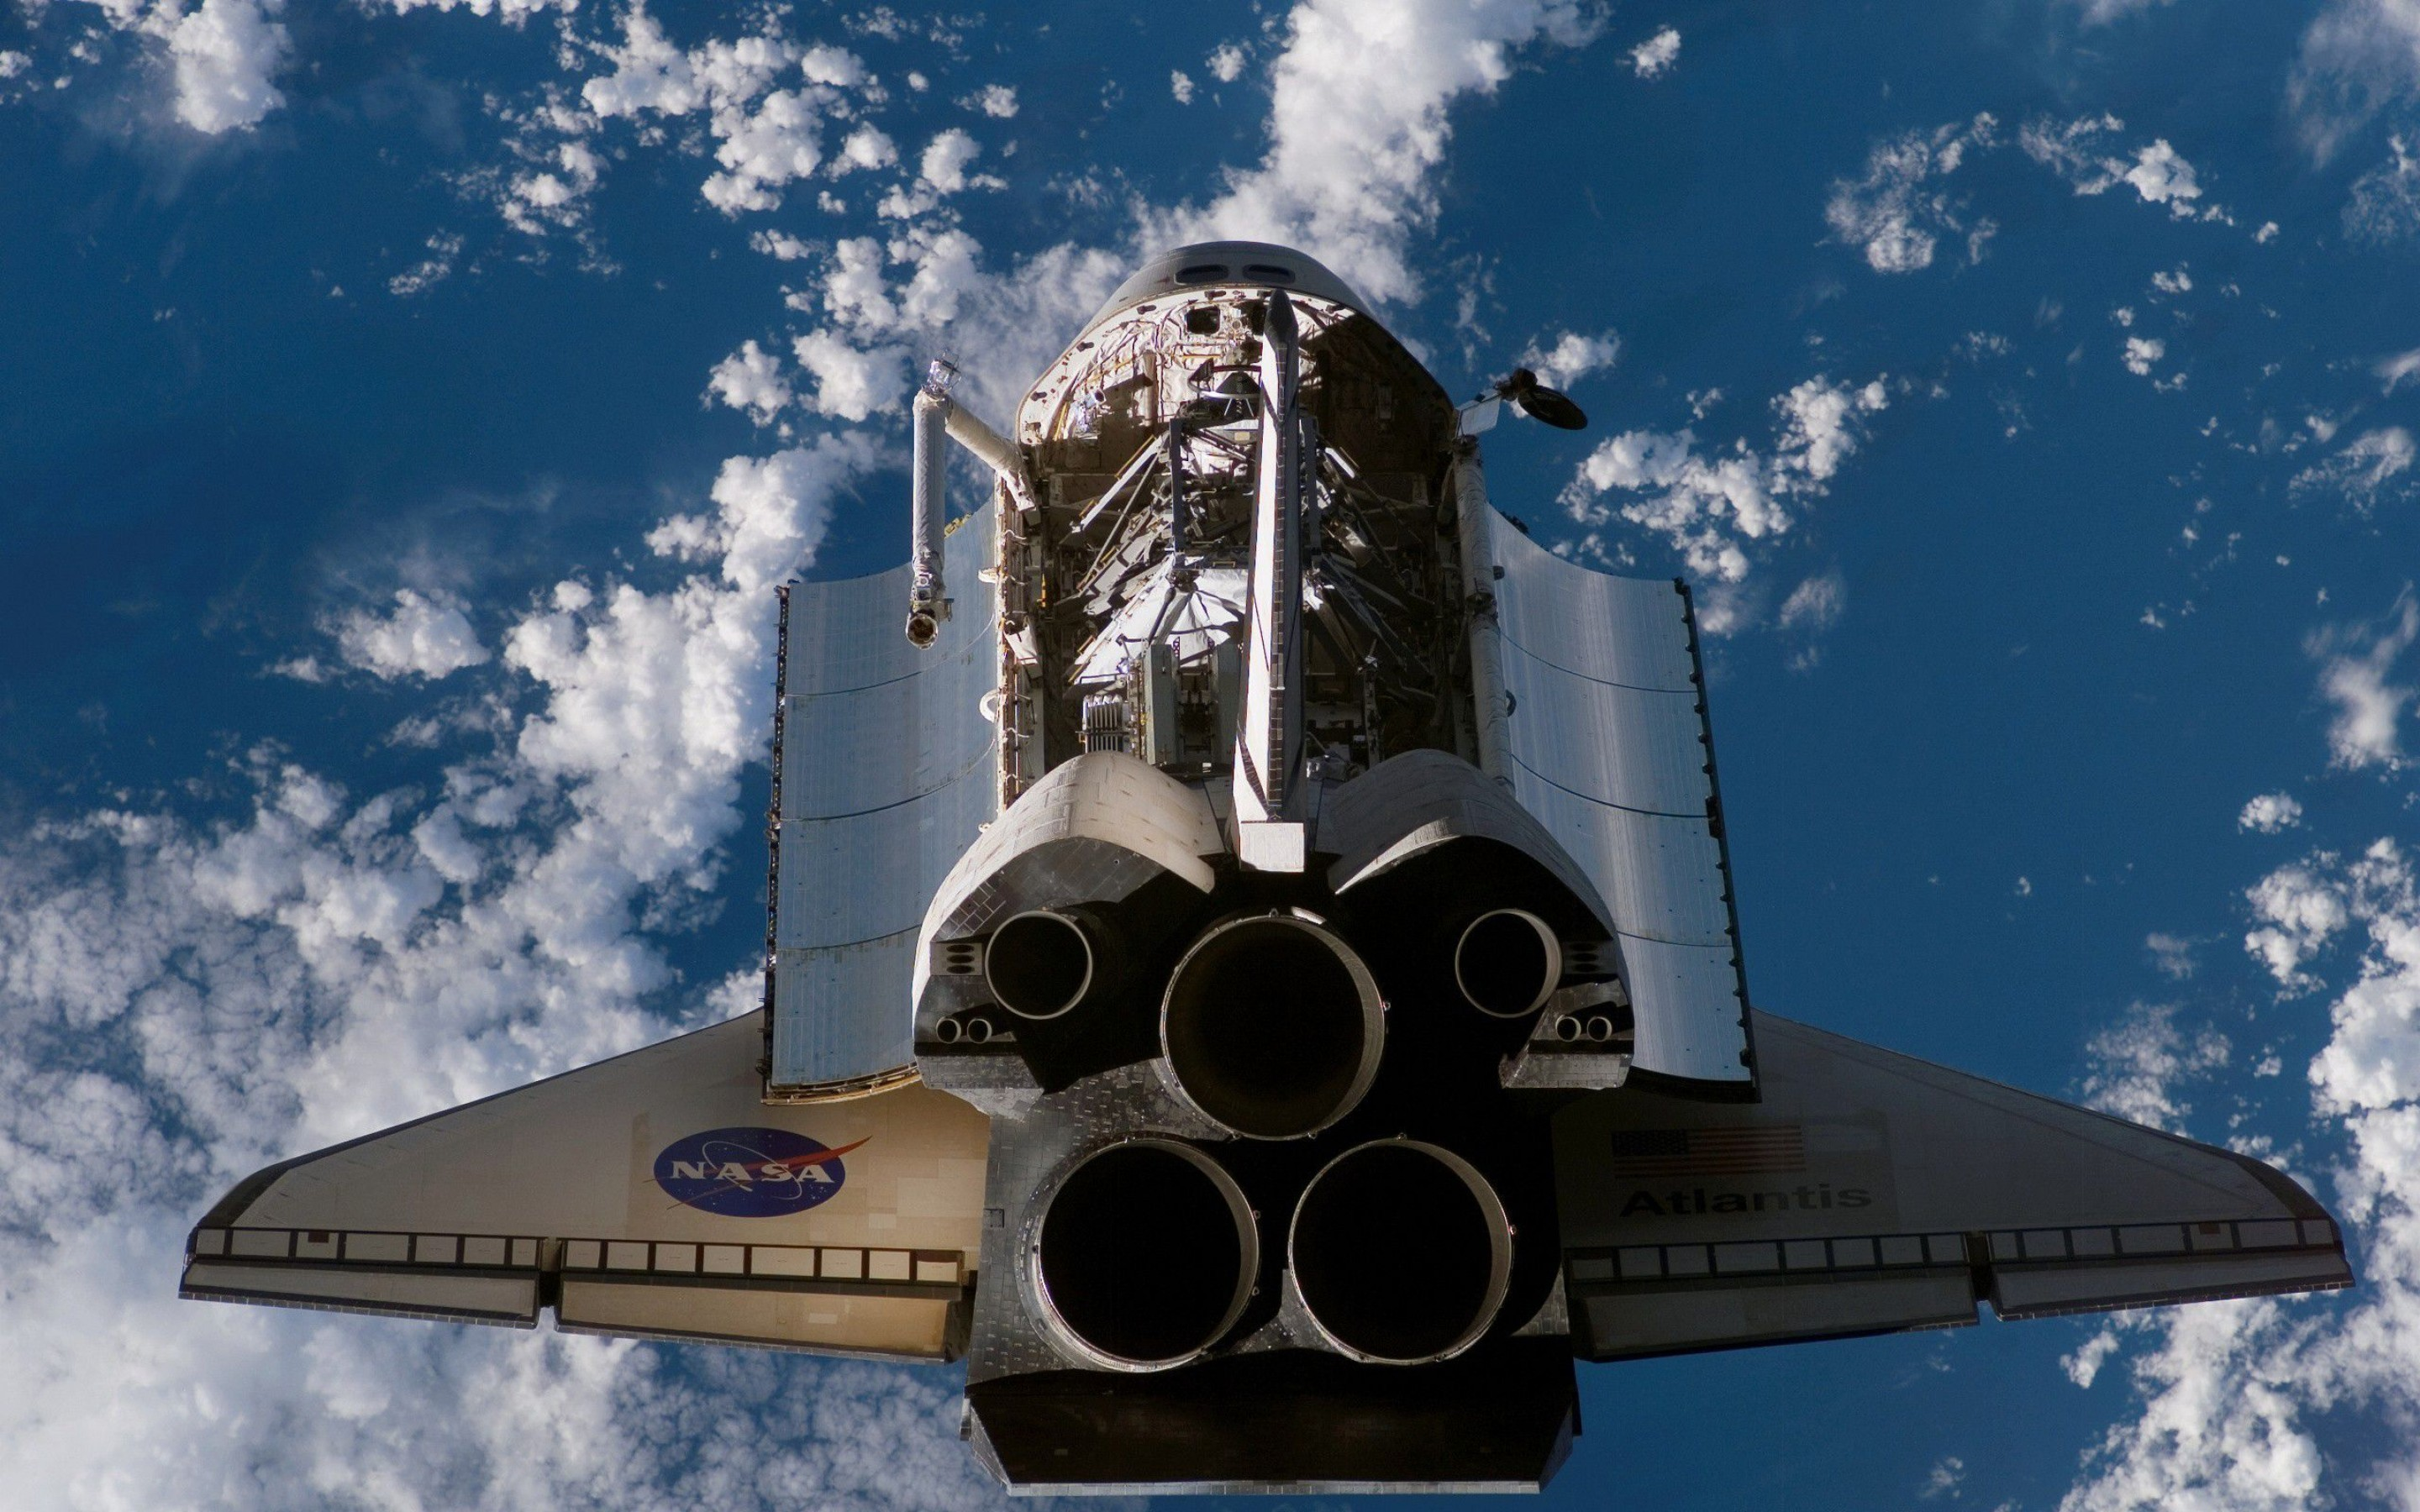 30 super hd space wallpapers - Nasa space shuttle wallpaper ...